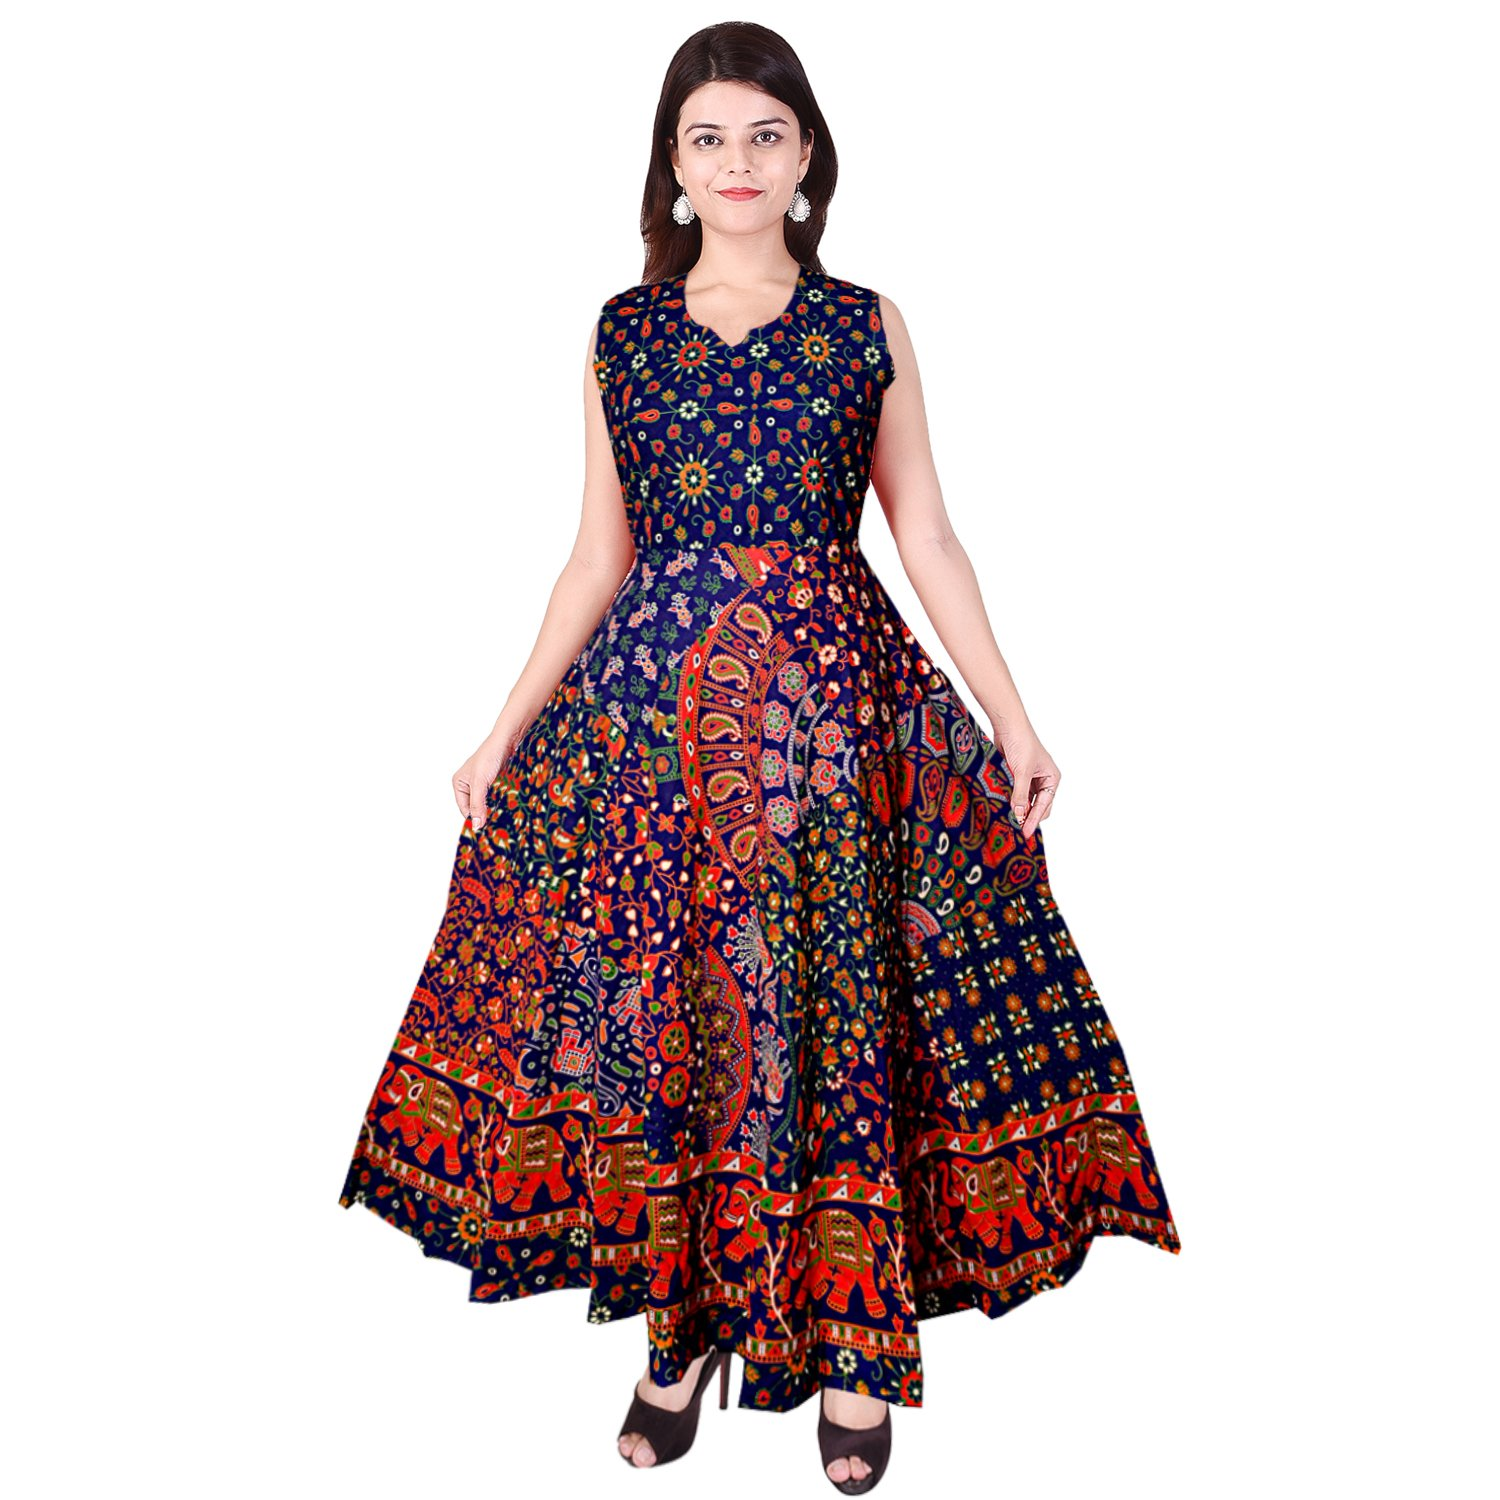 e04ee1d171 JWF Women's Cotton One Piece Jaipuri Print Long Dress (FR_4818,  Multicolour): Amazon.in: Clothing & Accessories